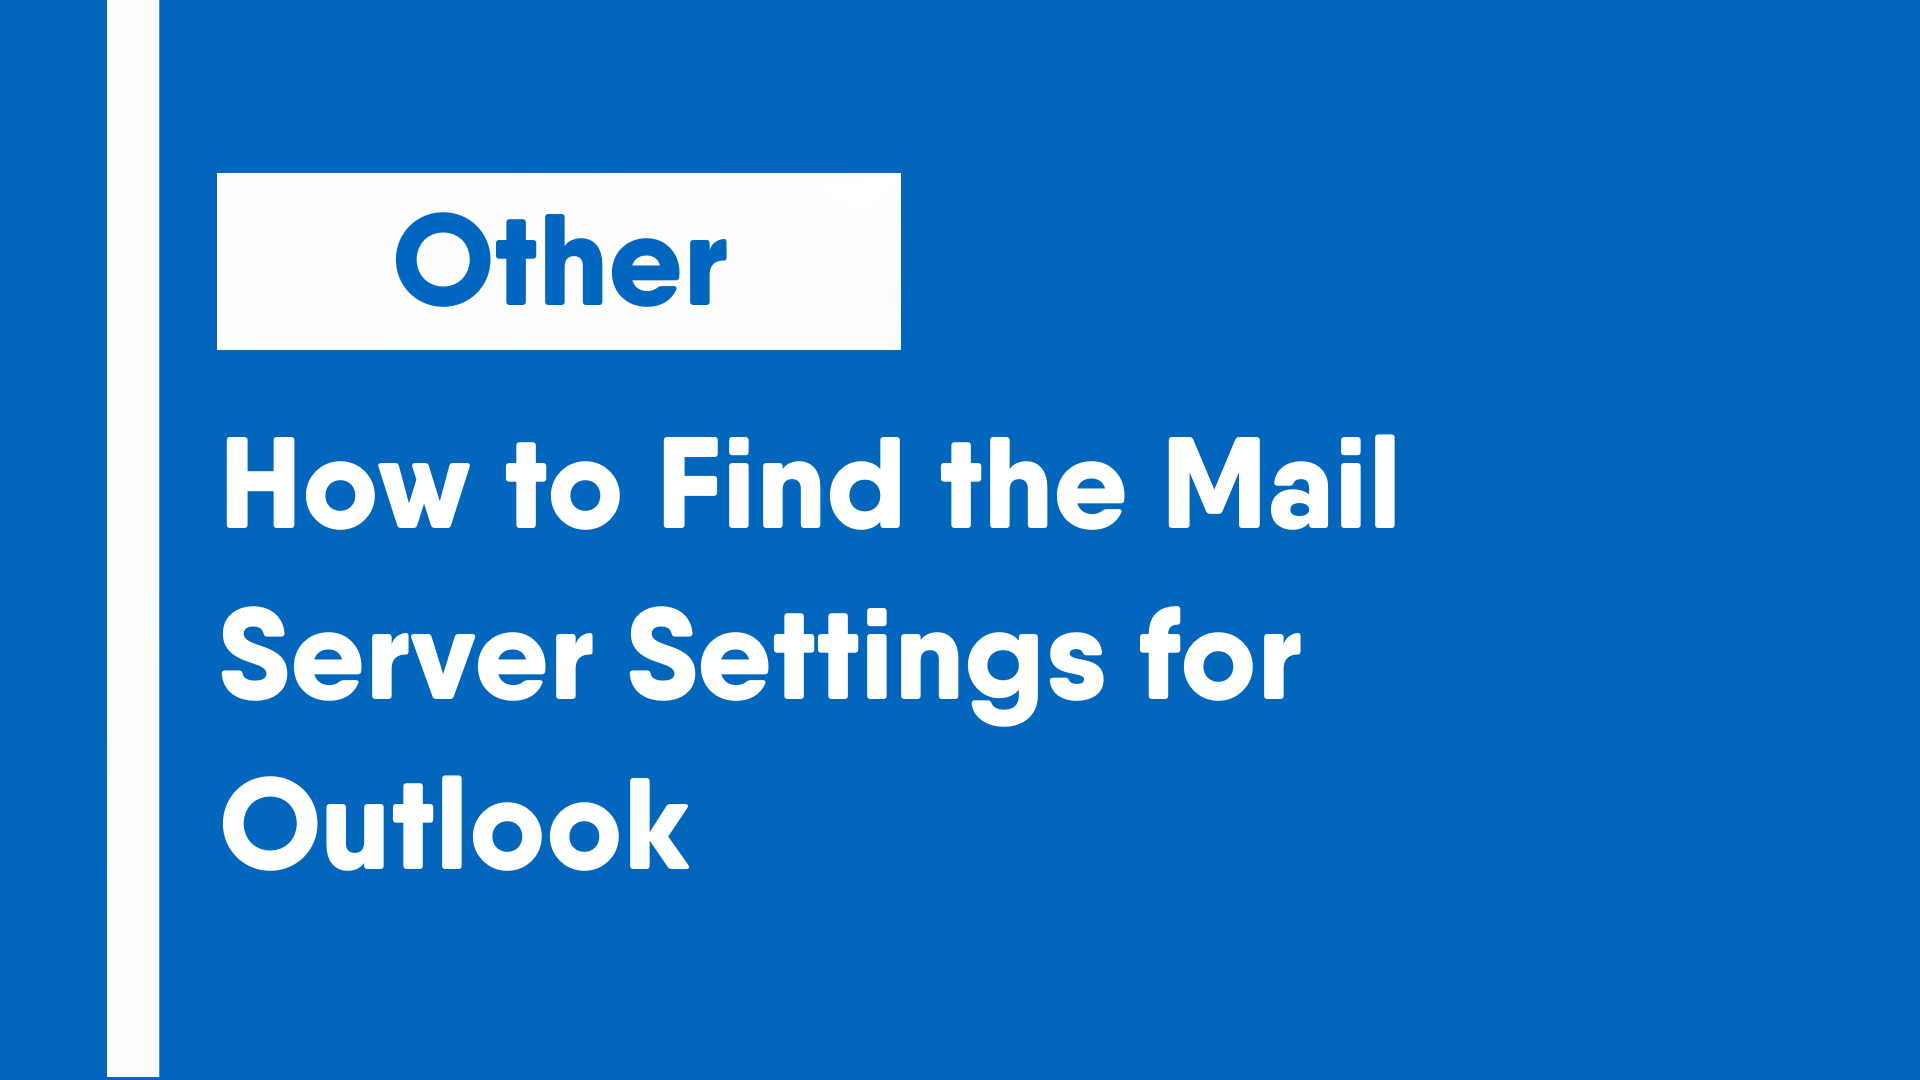 How to Find the Mail Server Settings for Outlook